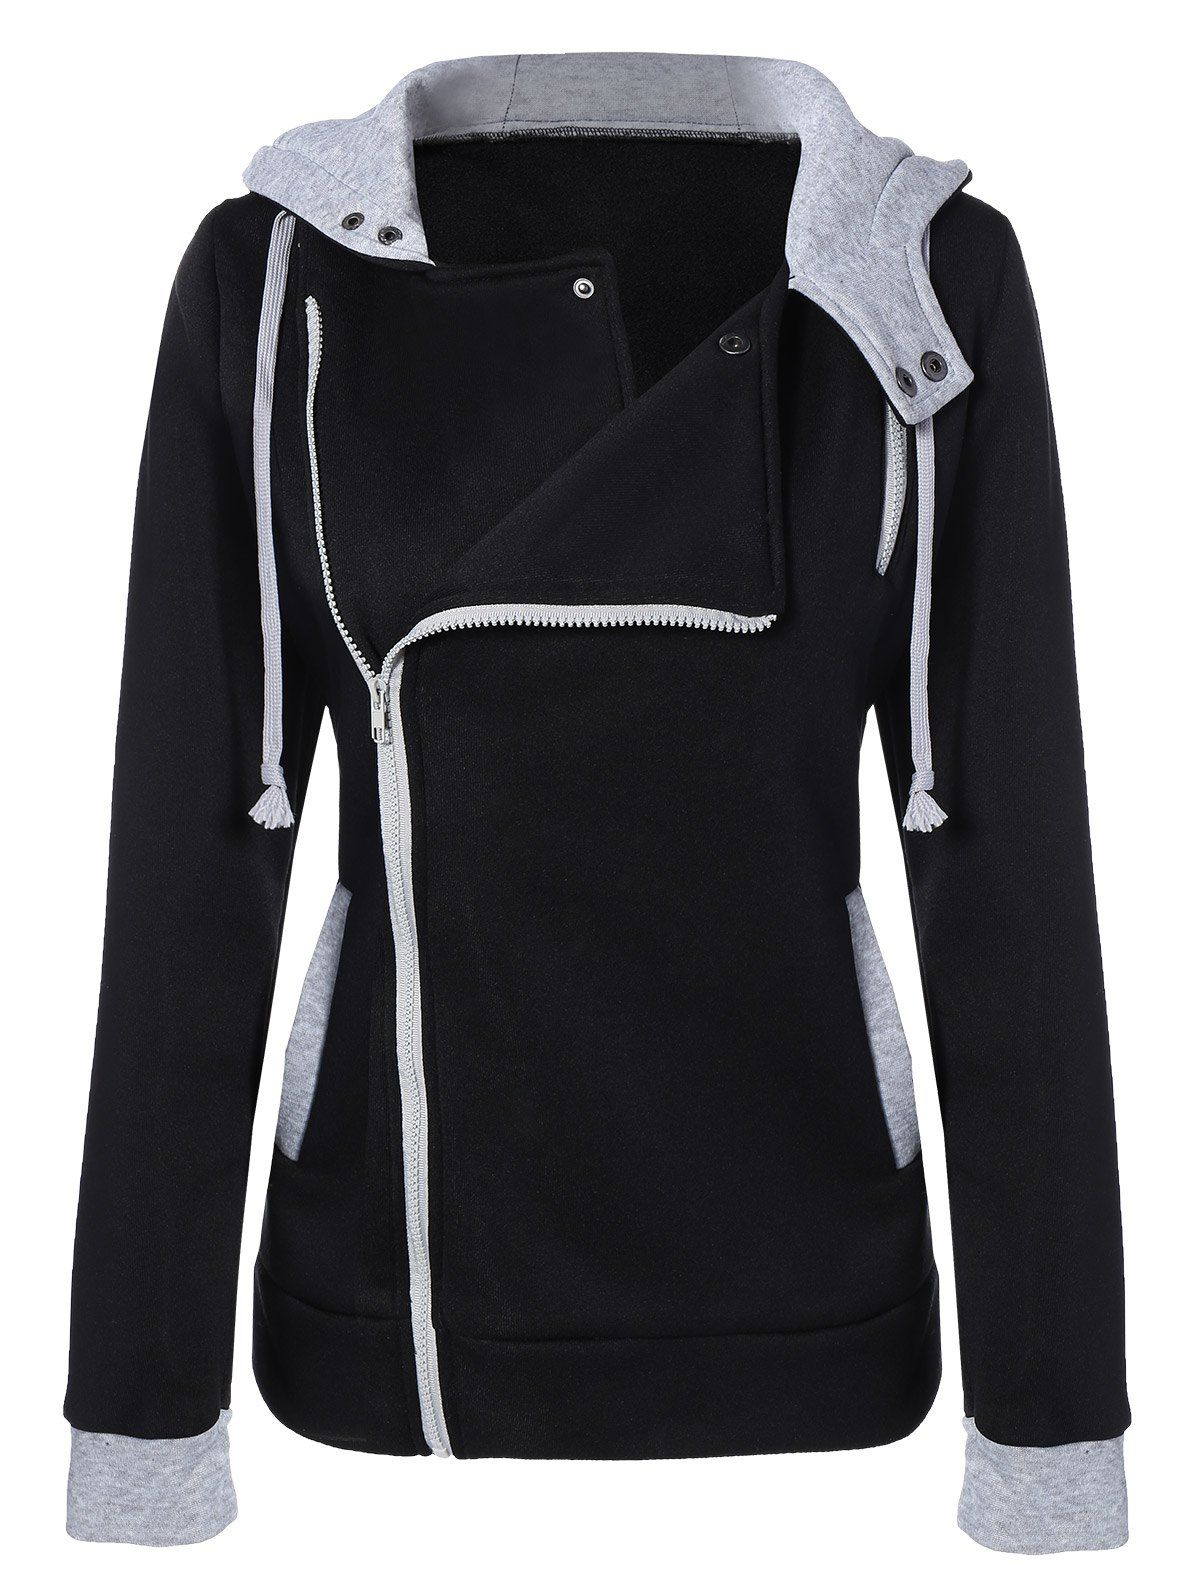 Black Casual Hooded Cotton Blend Fashionable Jacket for Women ... a74187b12c